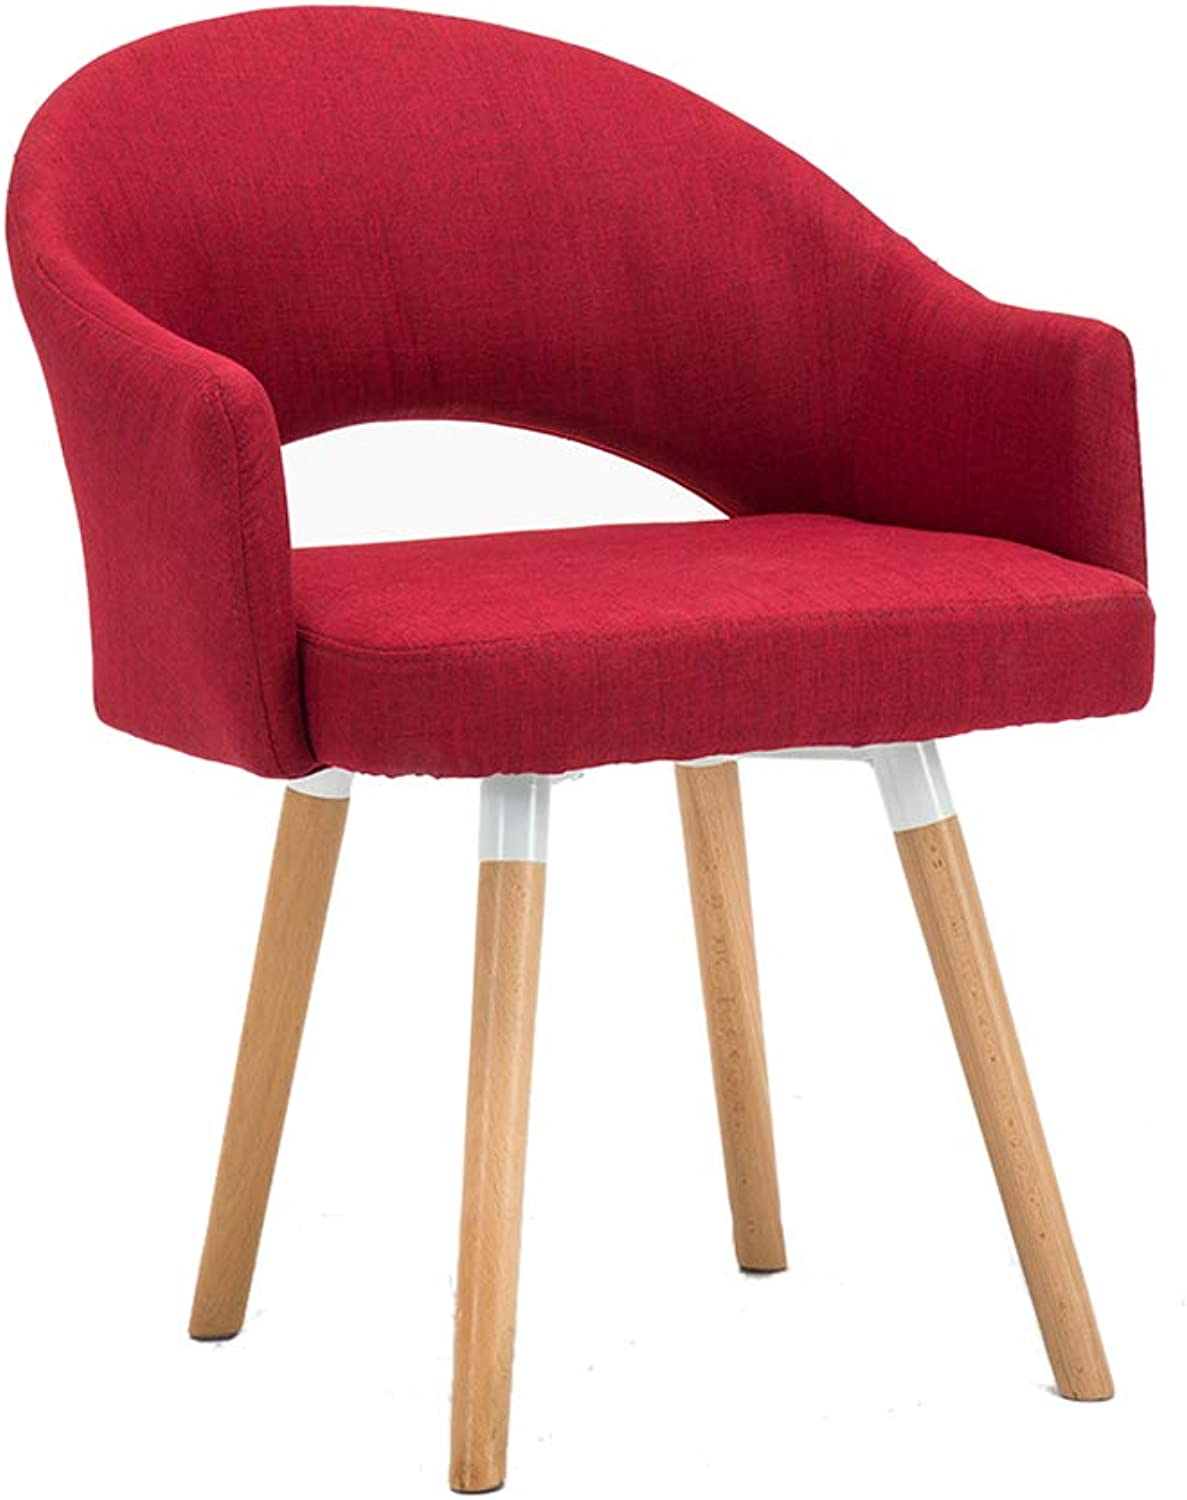 Dining Chairs Sofa Lounge Chair Computer Chair Makeup Stool,Solid Beech Wooden Legs Cotton Linen, for Restaurant Pub Cafe Living Room Hotel Balcony